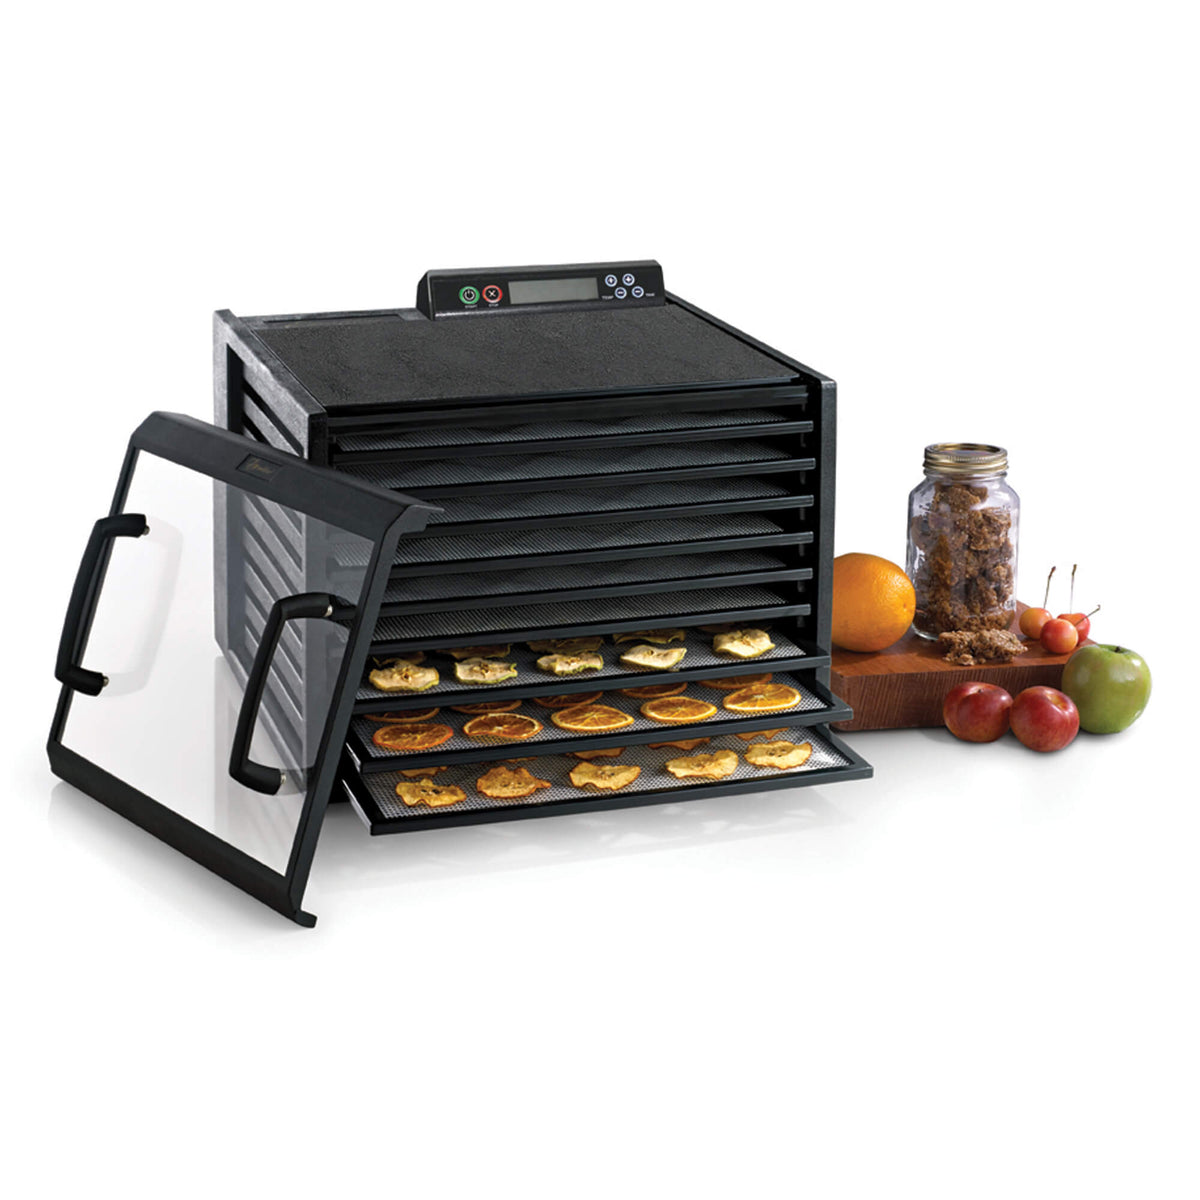 Excalibur 4948CDB 9 tray digital dehydrator with clear door propped to the side and food on the trays.